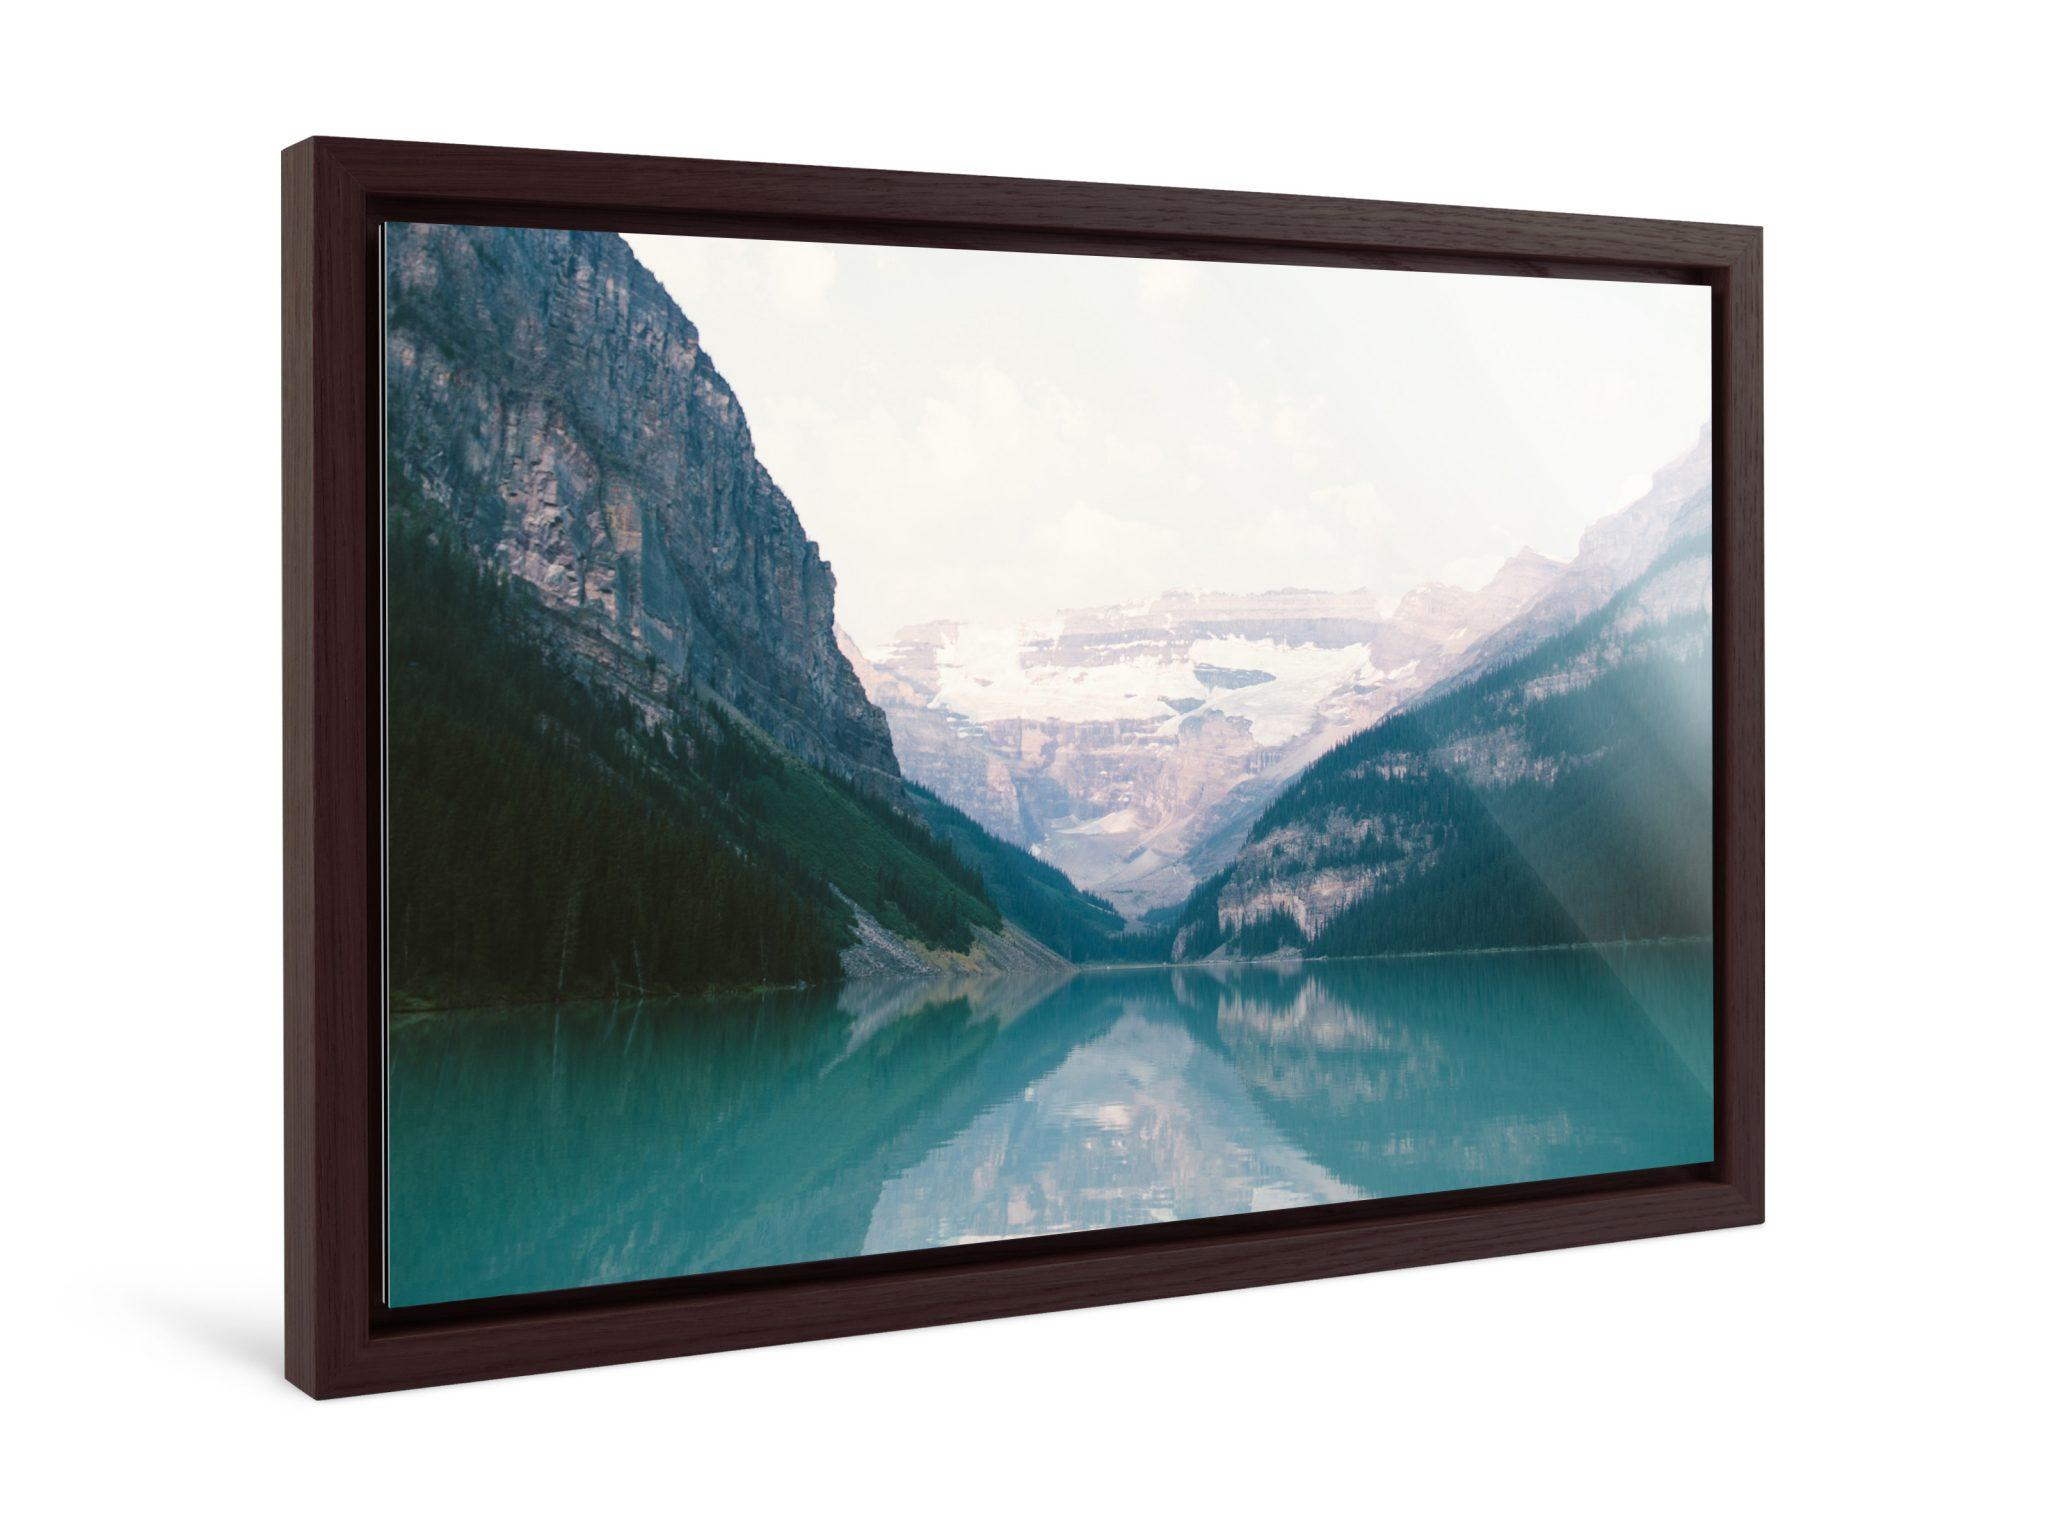 The Perfect Picture Frame for Your Smartphone Photo | WhiteWall